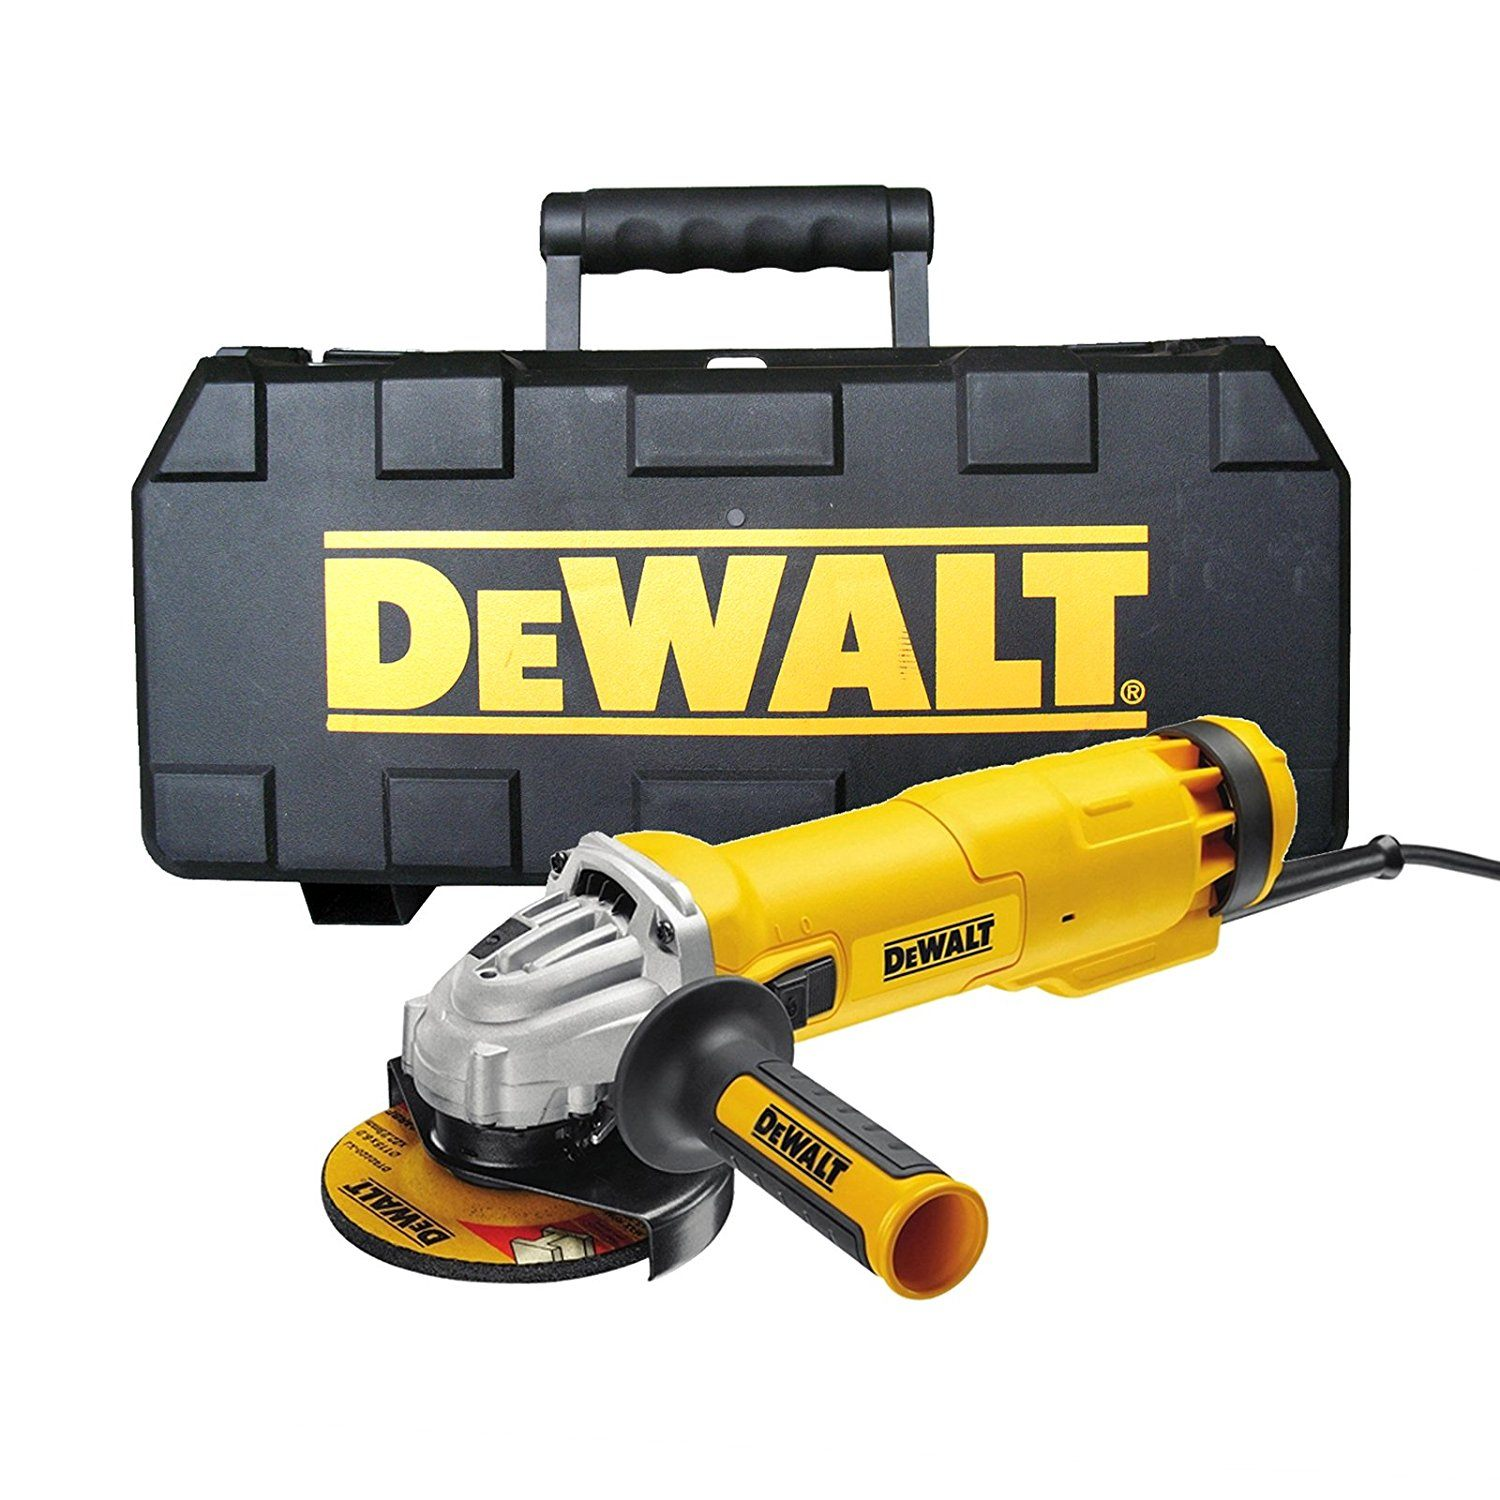 picture of the dewalt mini angle grinder